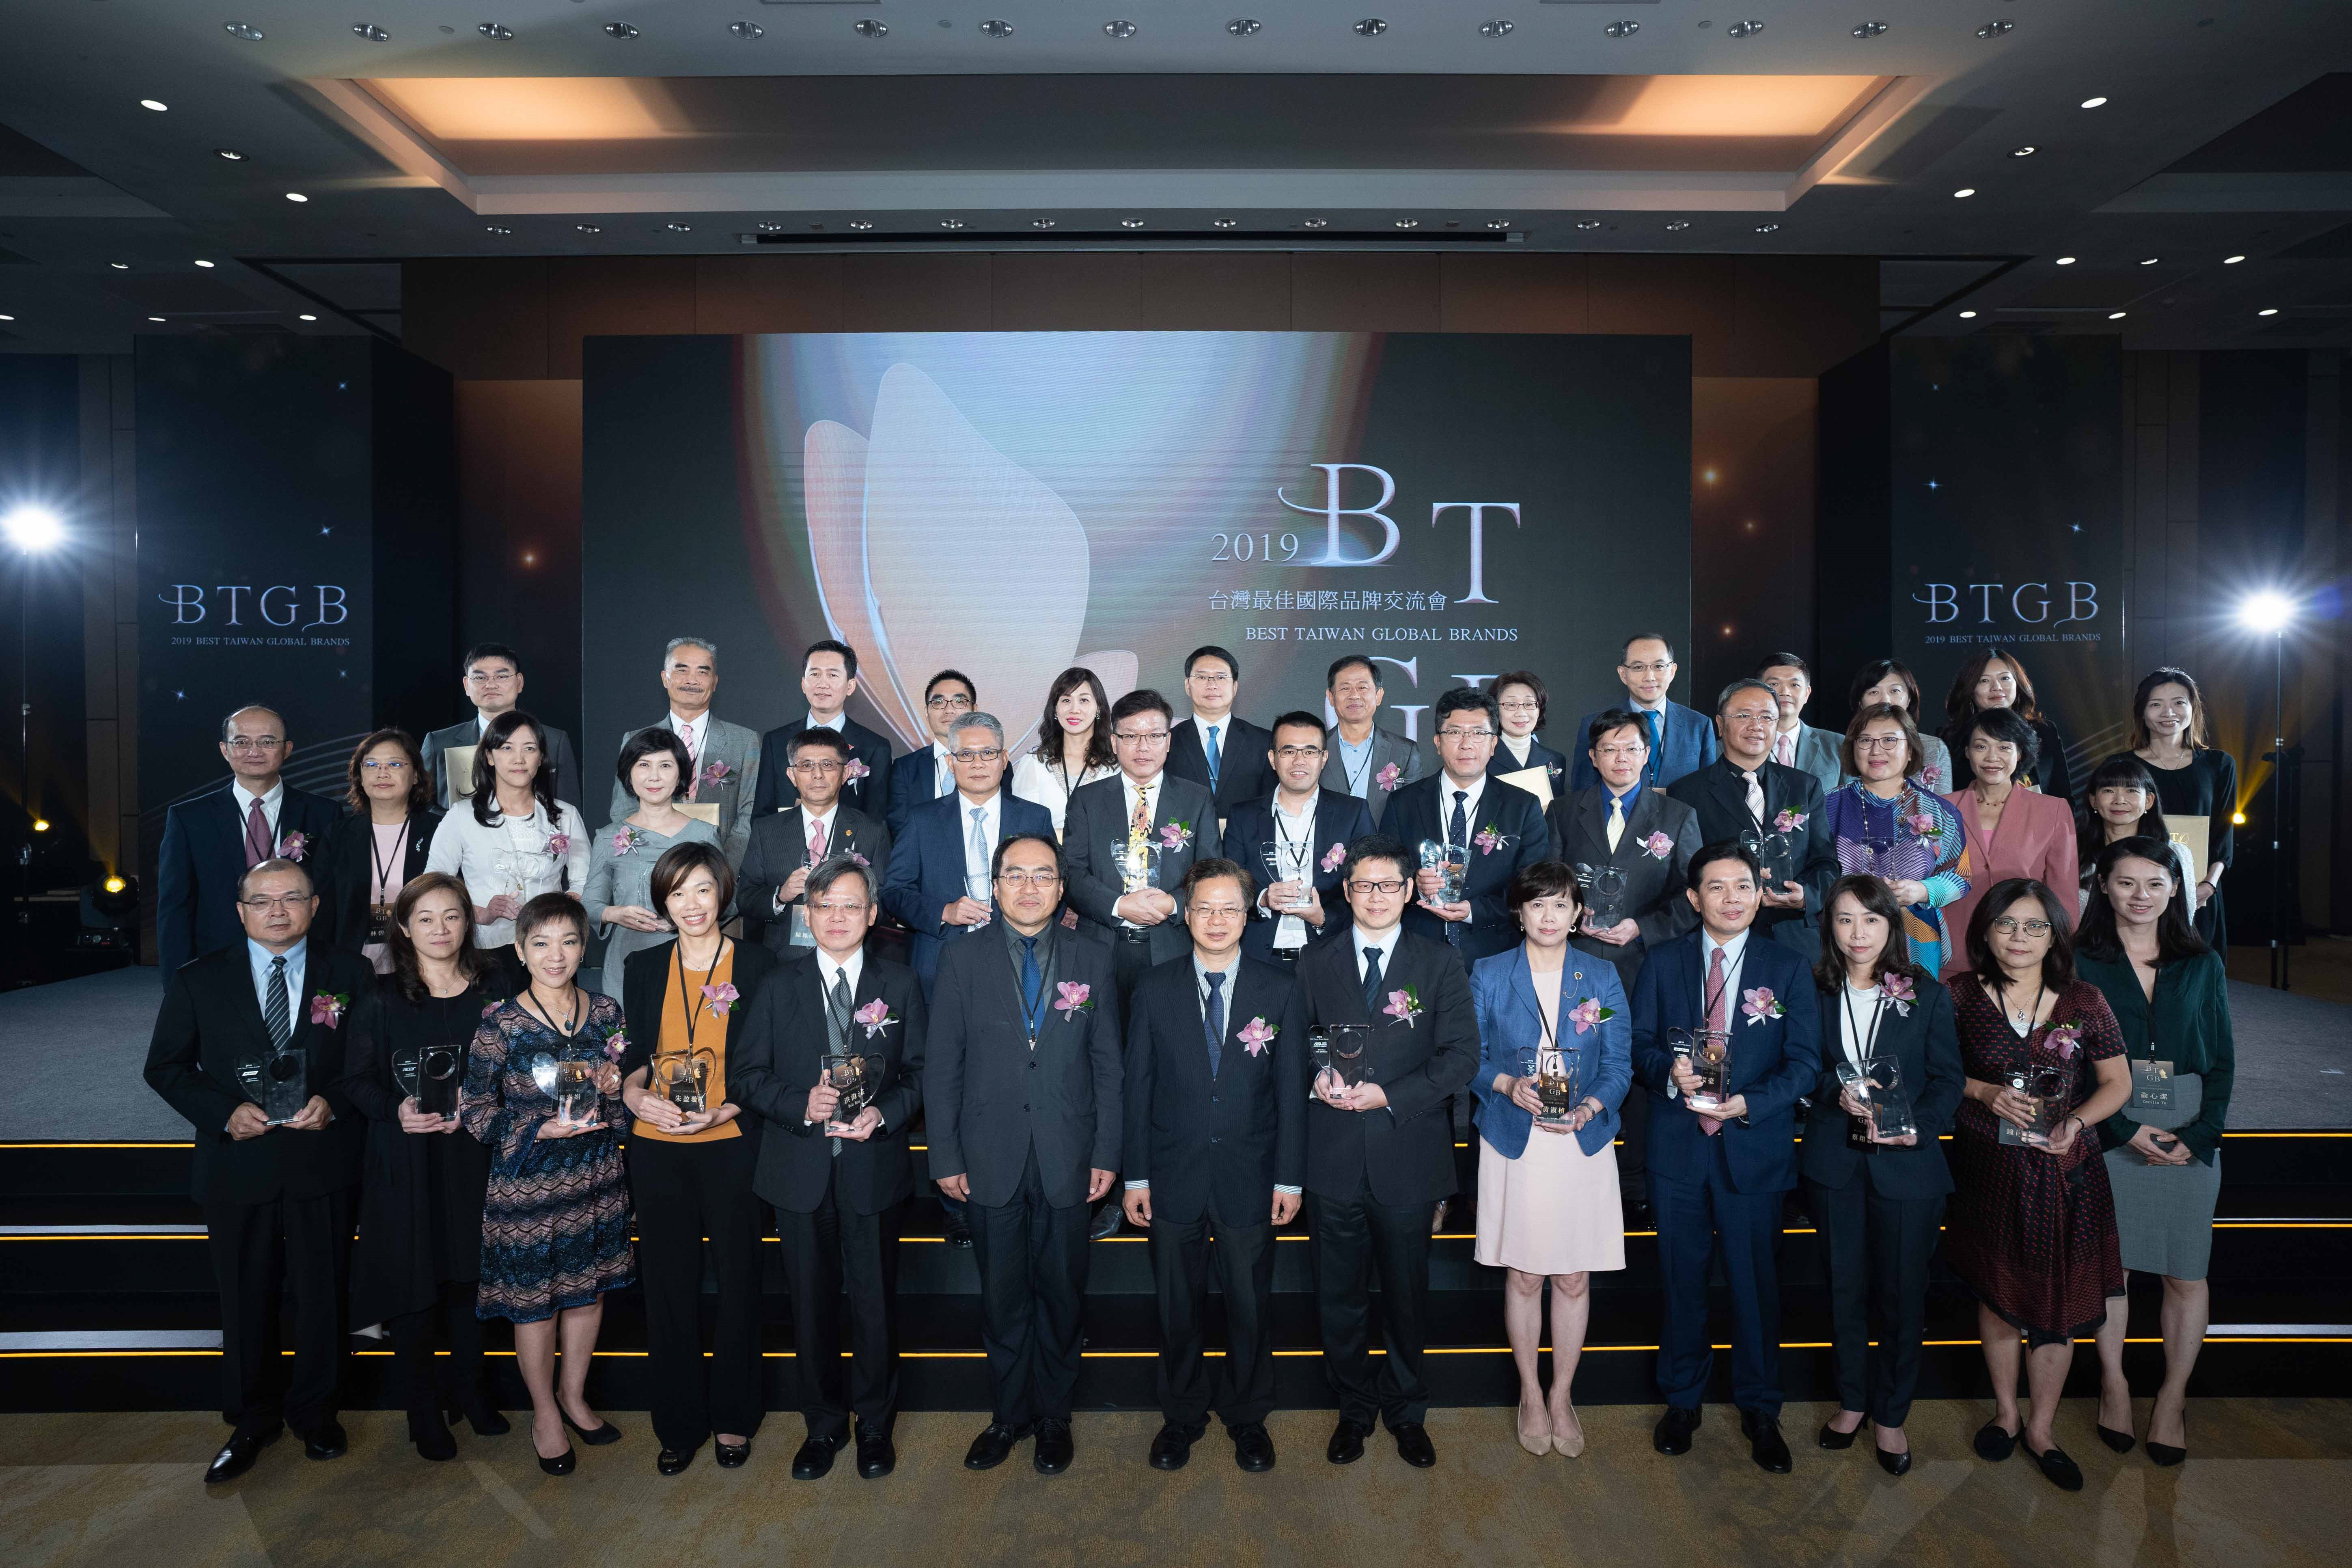 2019 Taiwan International Brand Value Revealed on October 24th